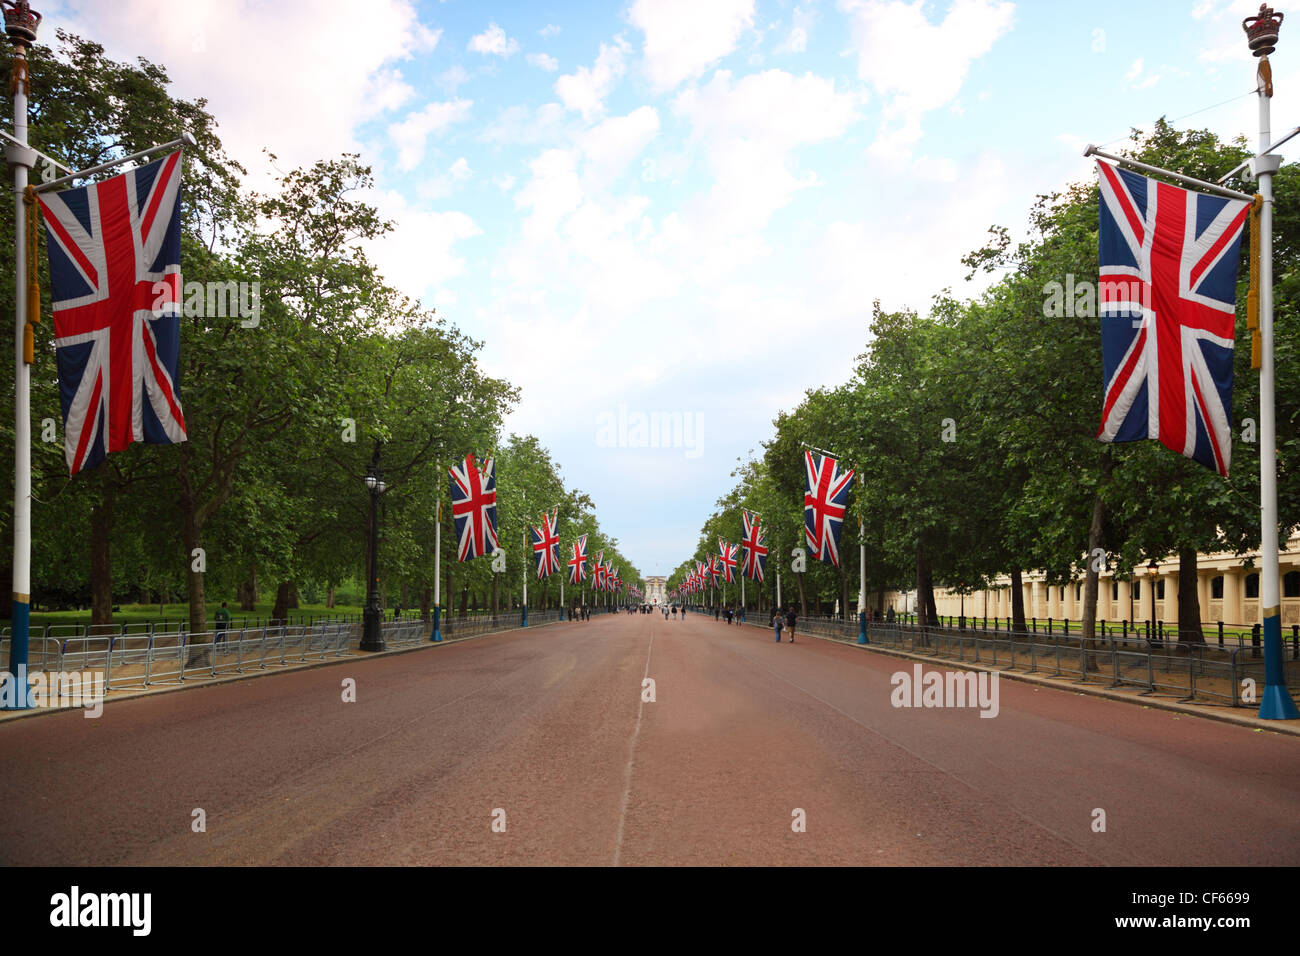 Alley Mall Buckingham Palace Are Seen In The Distance Right And Left Of Hang British Flags